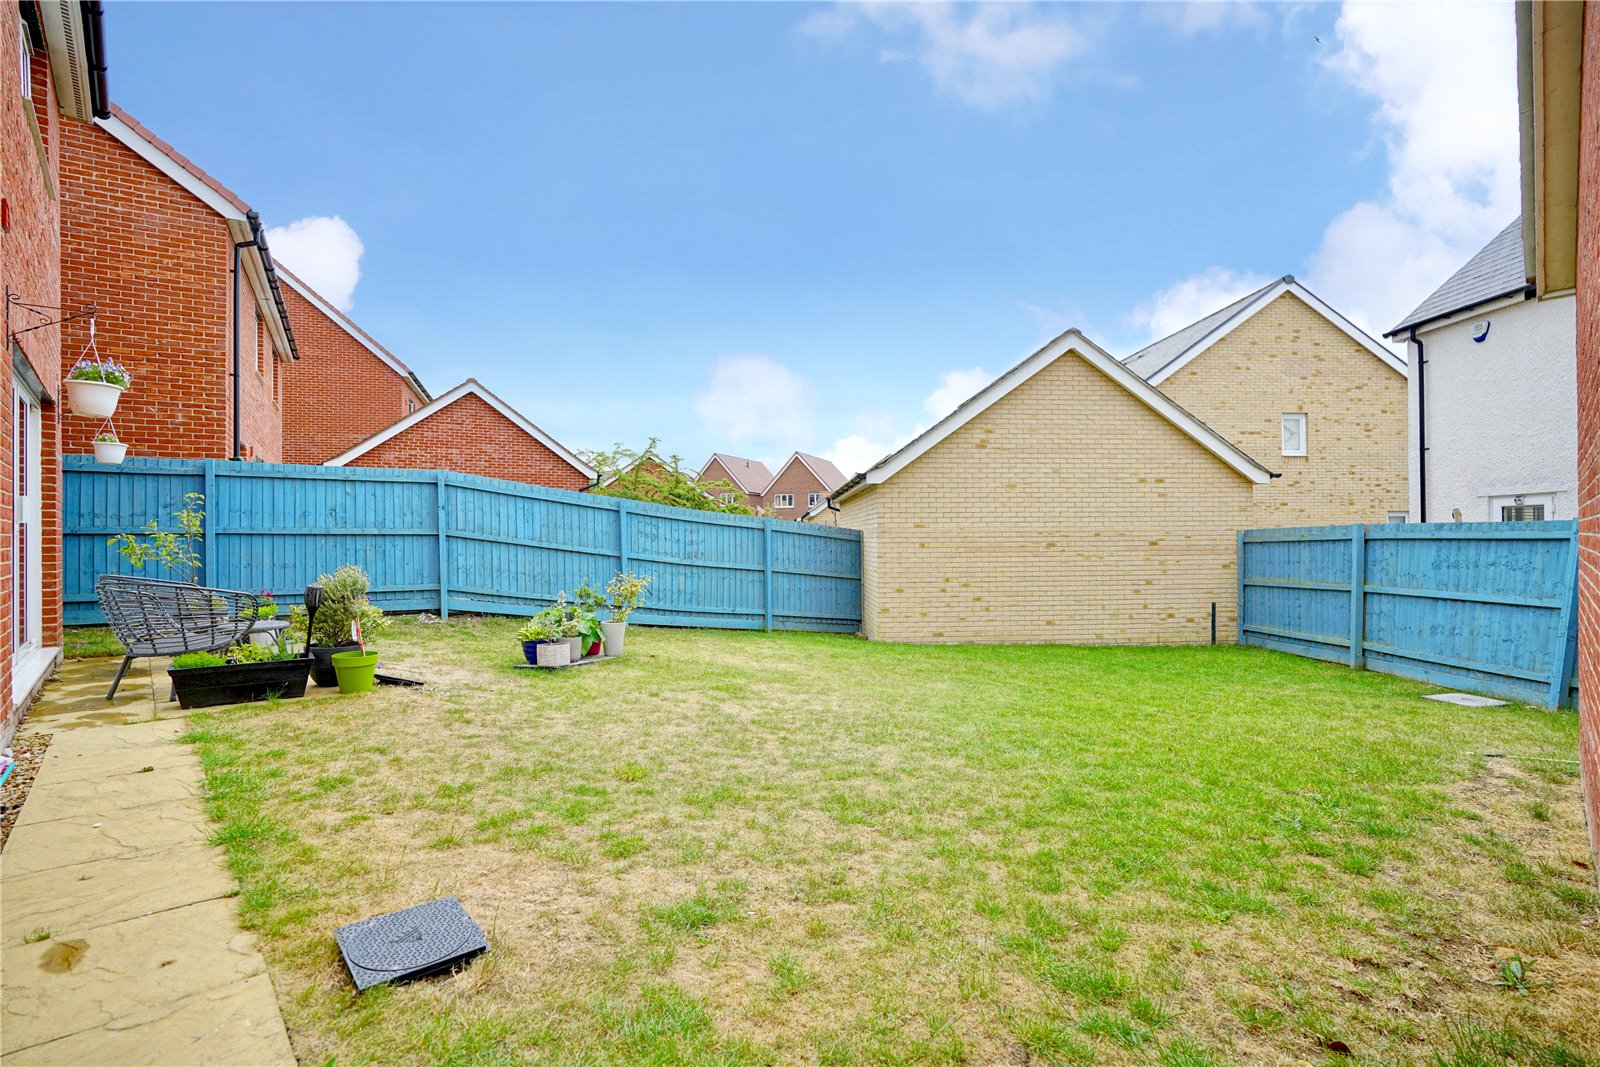 4 bed house for sale in Field Gate Close, St. Neots  - Property Image 6